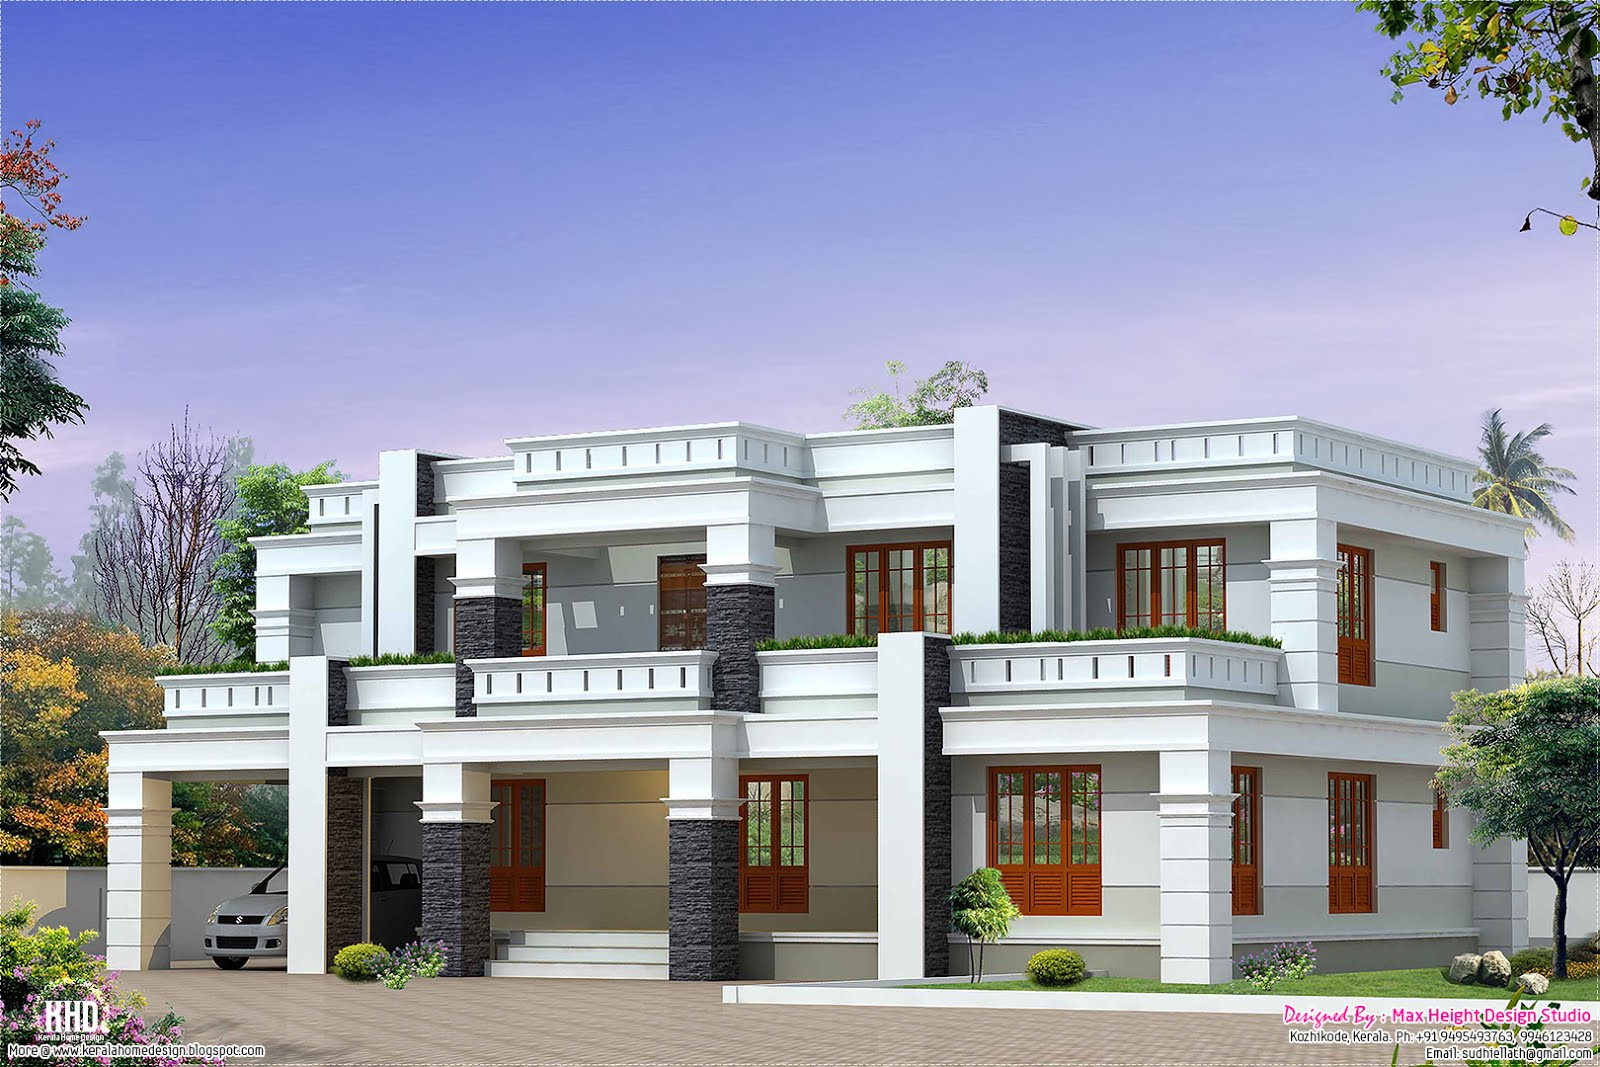 Flat roof luxury home design kerala home design and for Apartment roof design